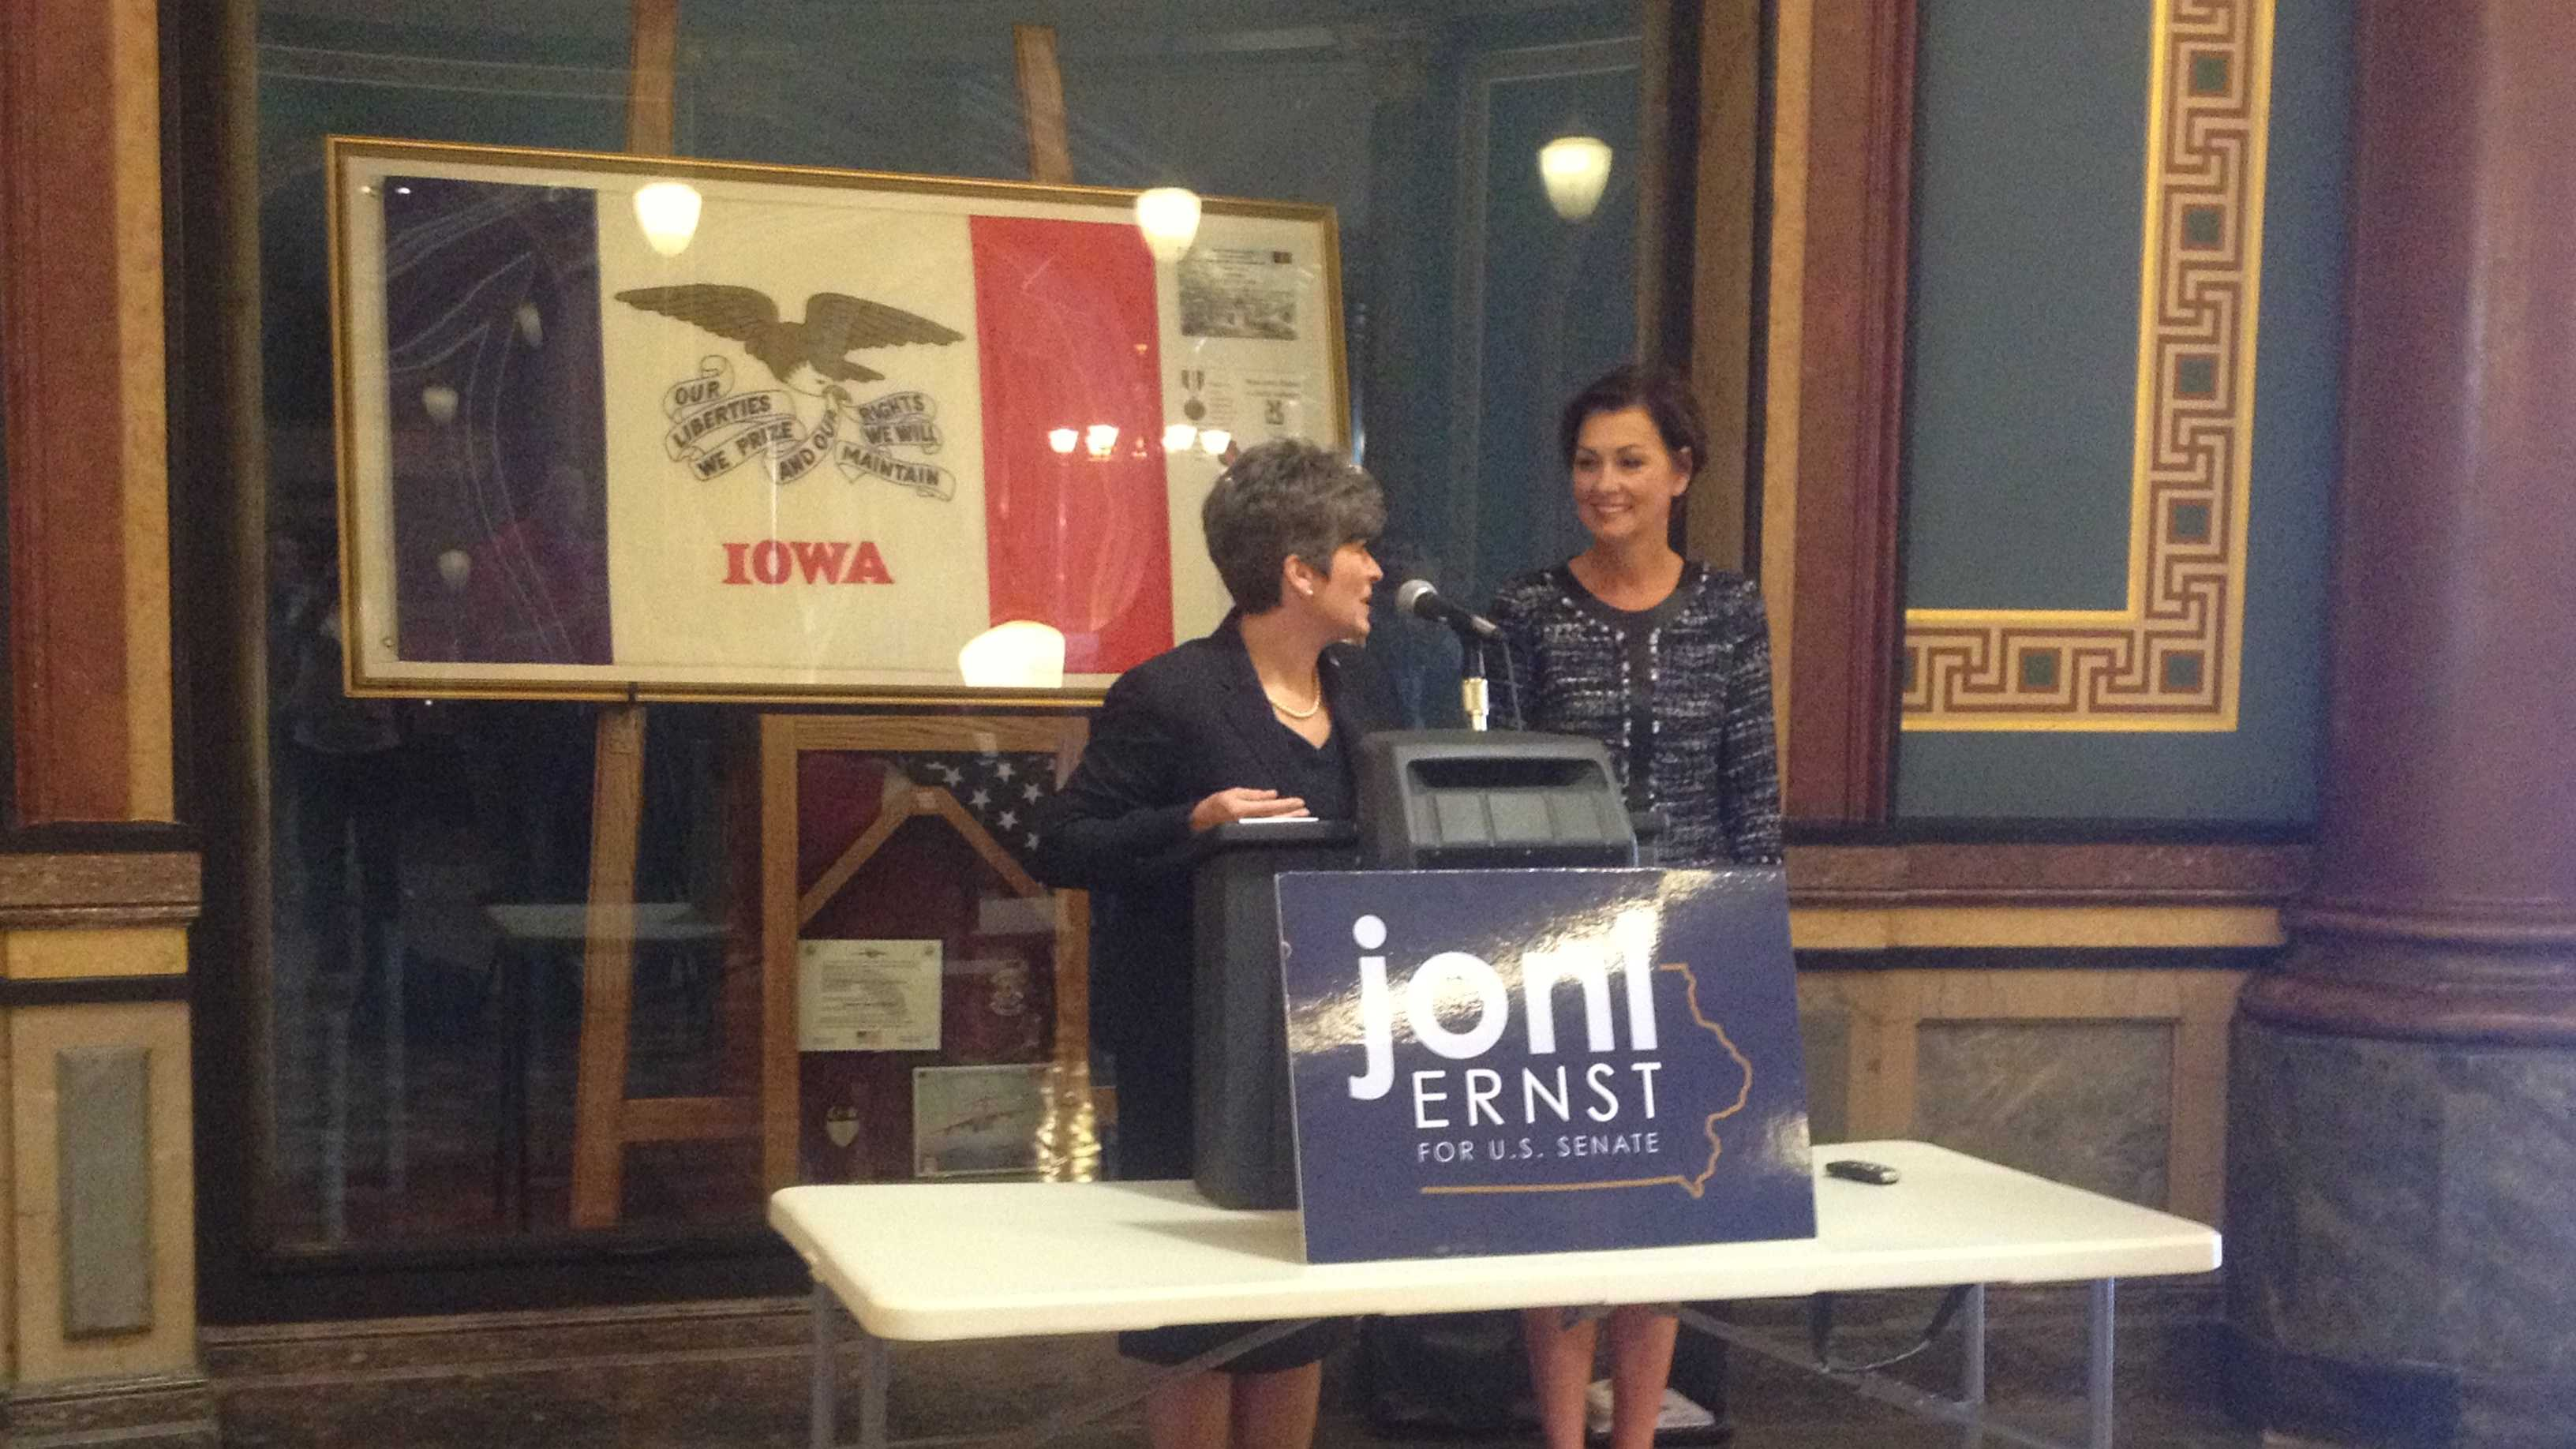 ernst endorsement reynold